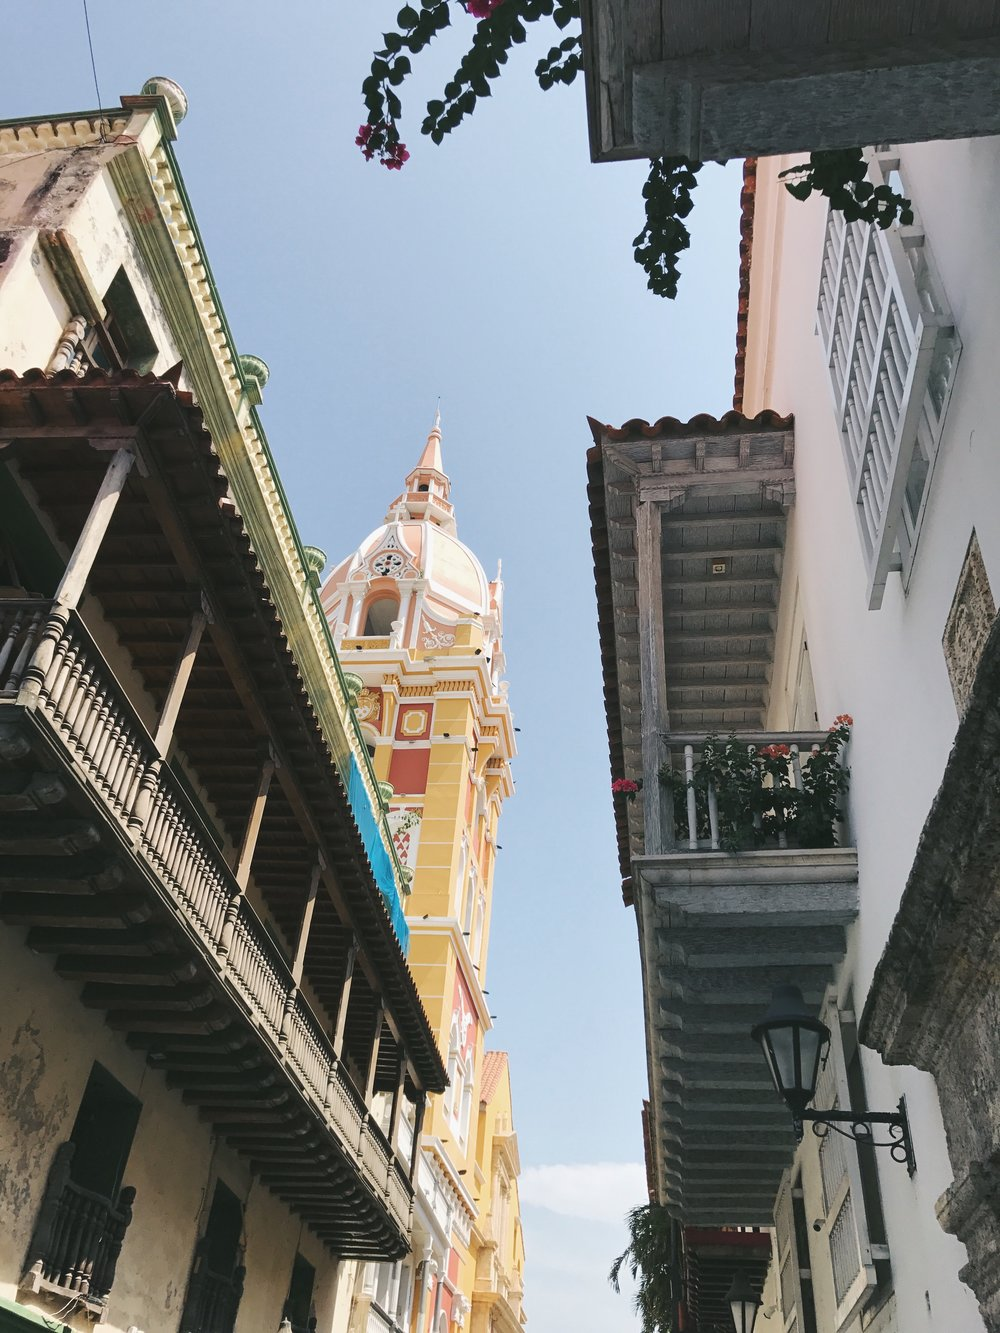 16th C. WALLED CITY |  Wood balconies with bursts of cascading bougainvillea are one of the most dazzling features of the colorful Spanish Colonial buildings